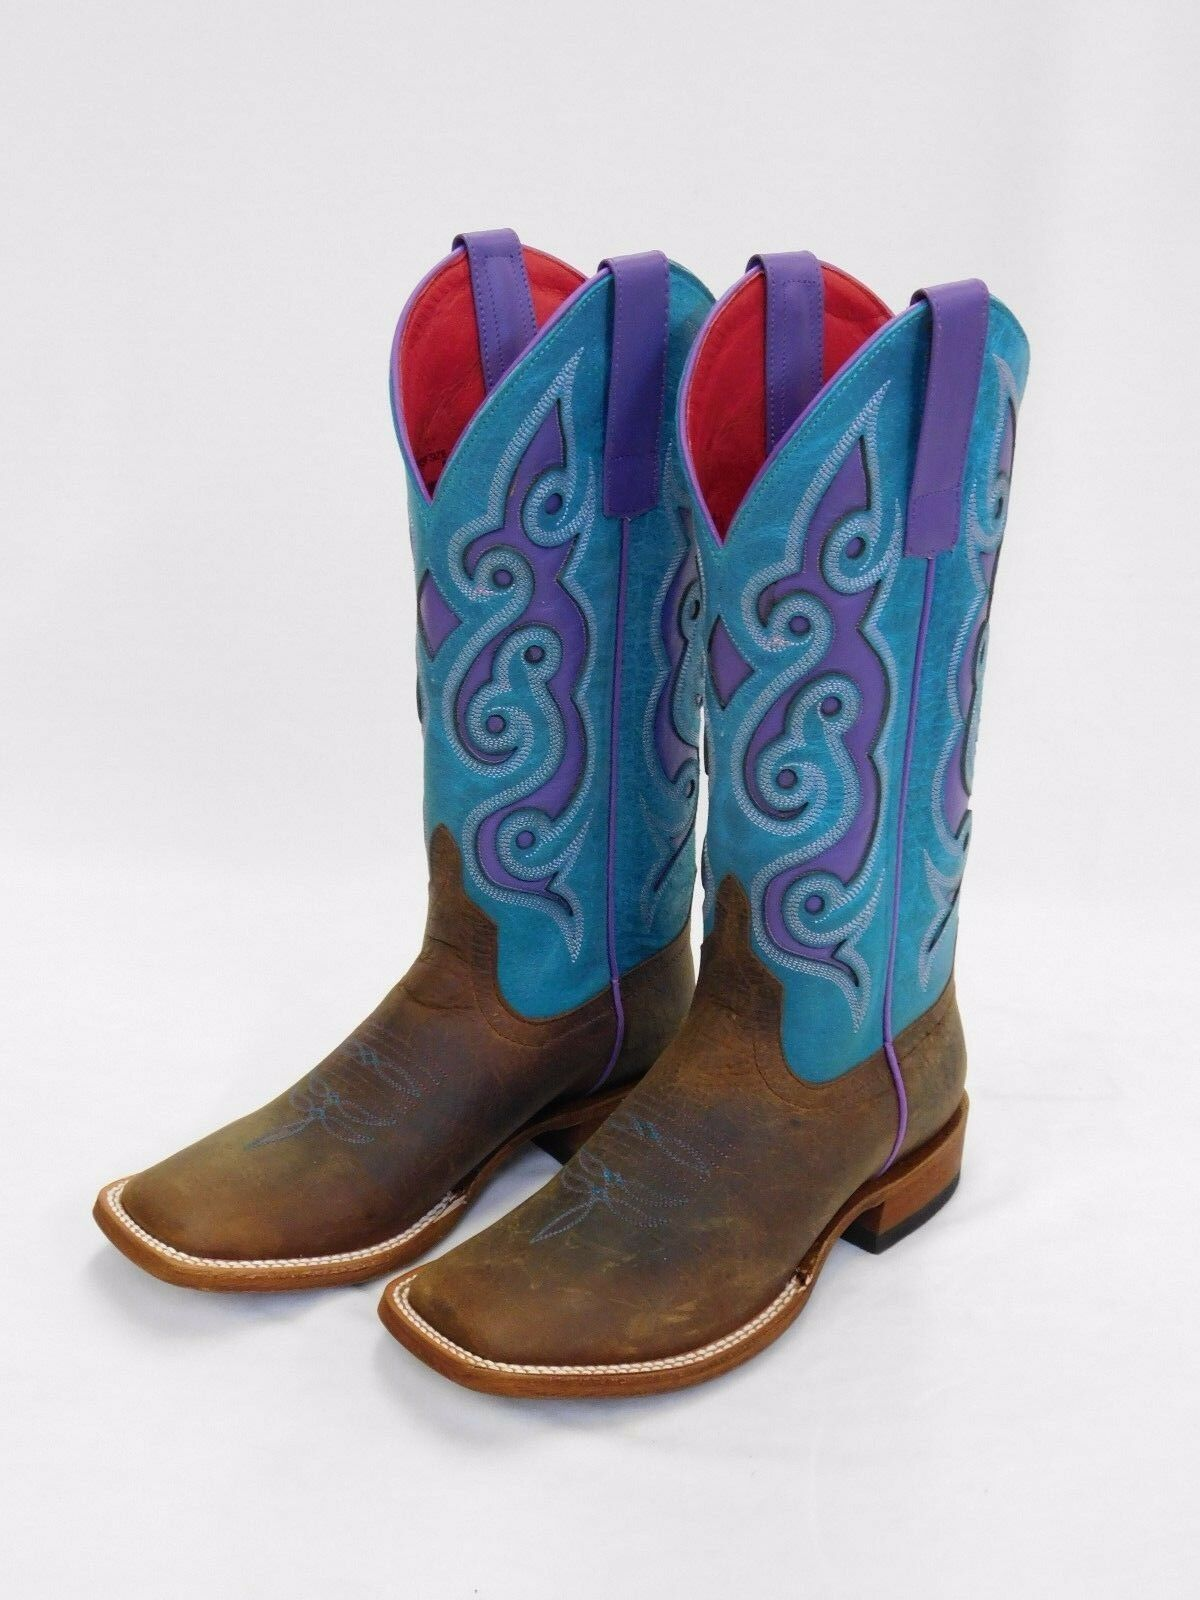 Women's Macie Bean Brown Sq Toe Boots-Turquoise Purple Tops M9076